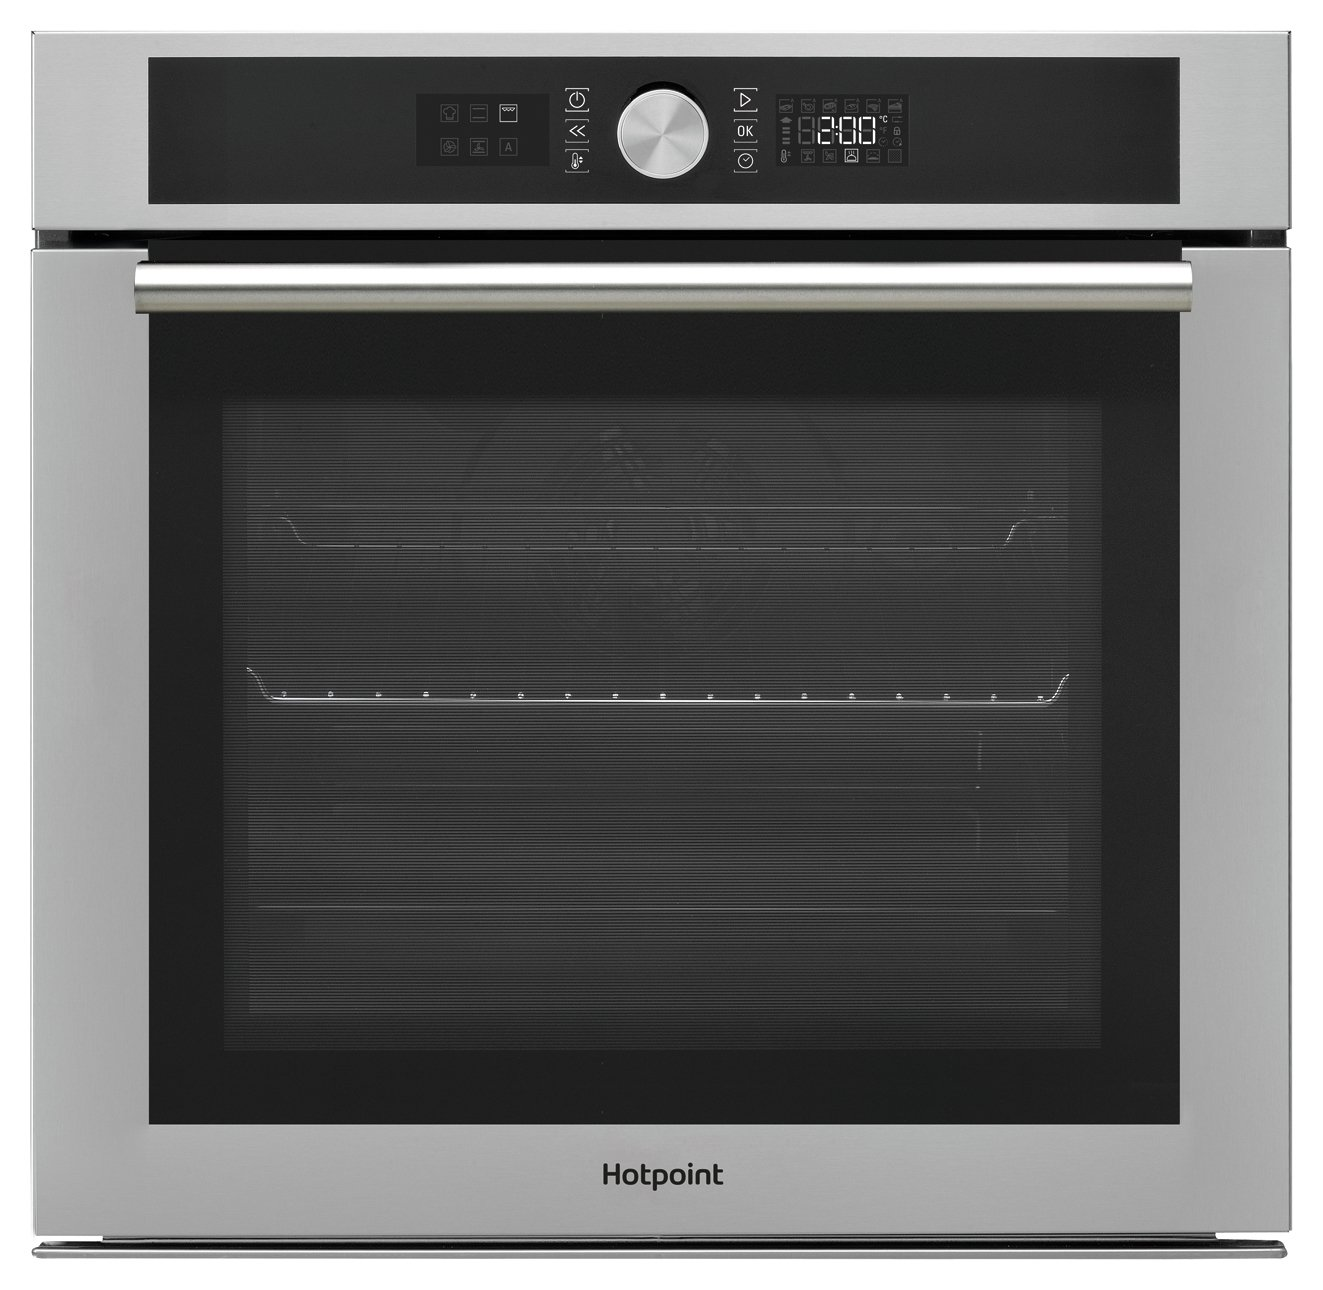 Hotpoint SI4854PIX Electric Built-In Oven - Stainless Steel